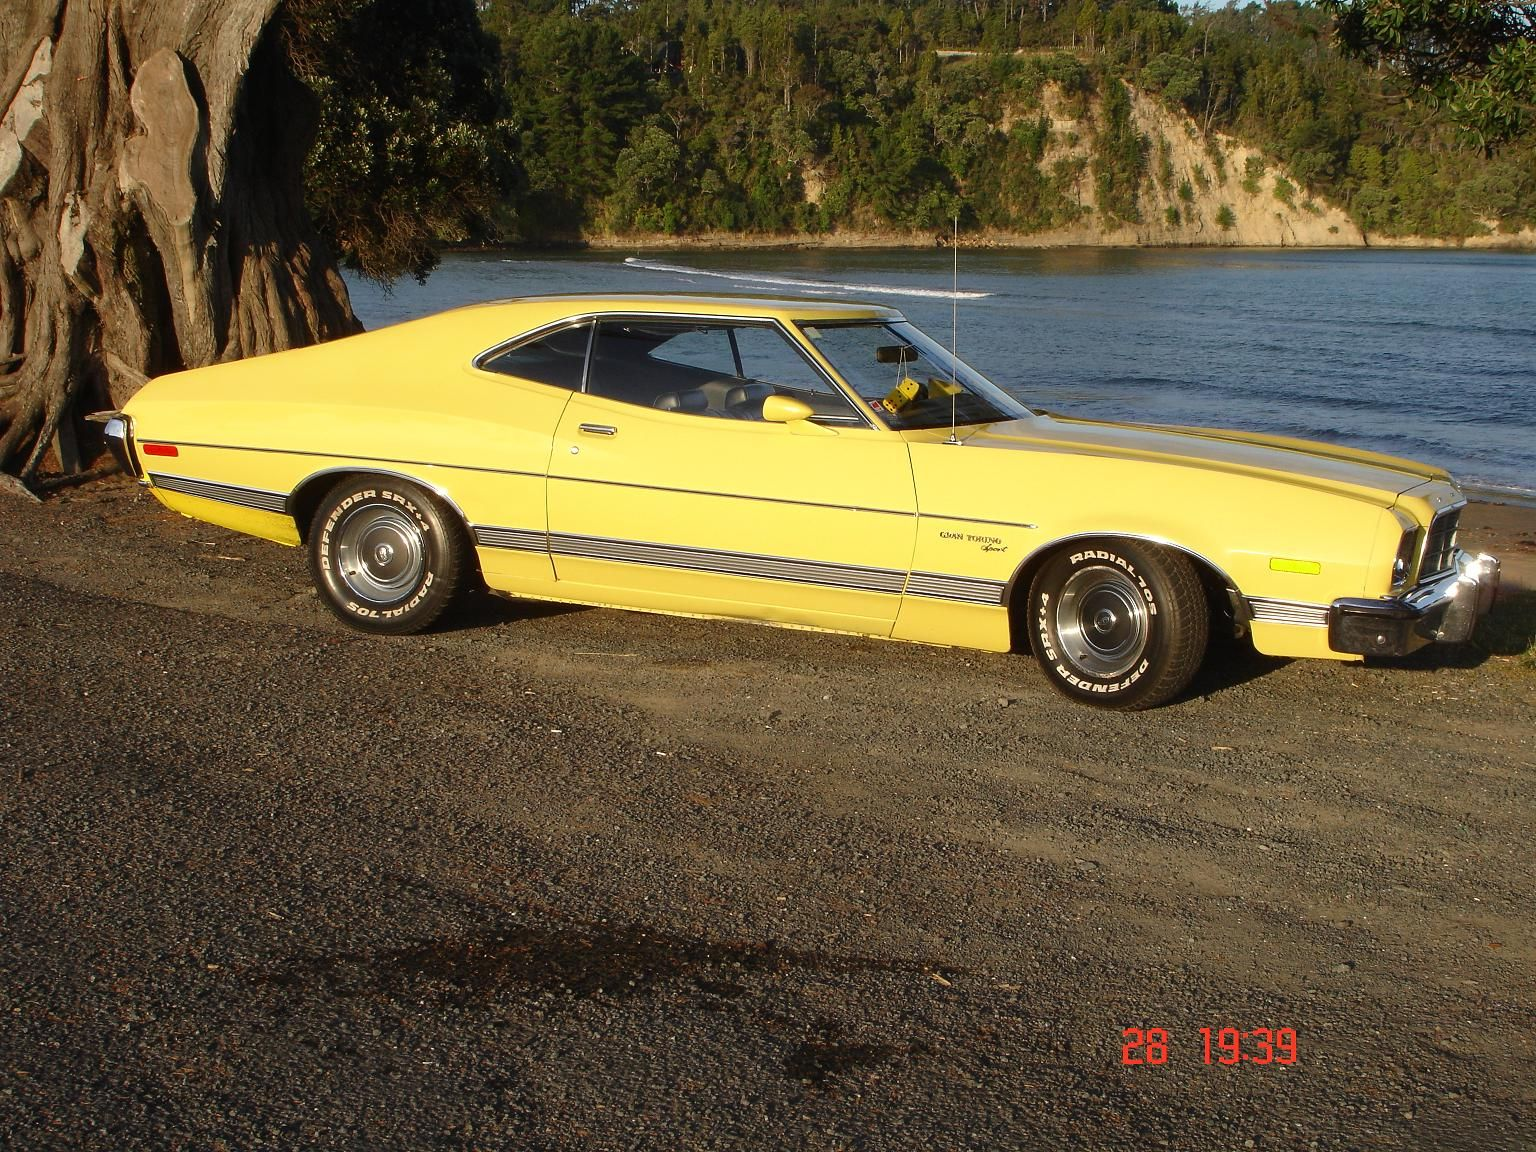 Yellow 1973 Gts The Ford Torino Page Forum Page 1 Ford Torino Ford Motor Company Fairlane